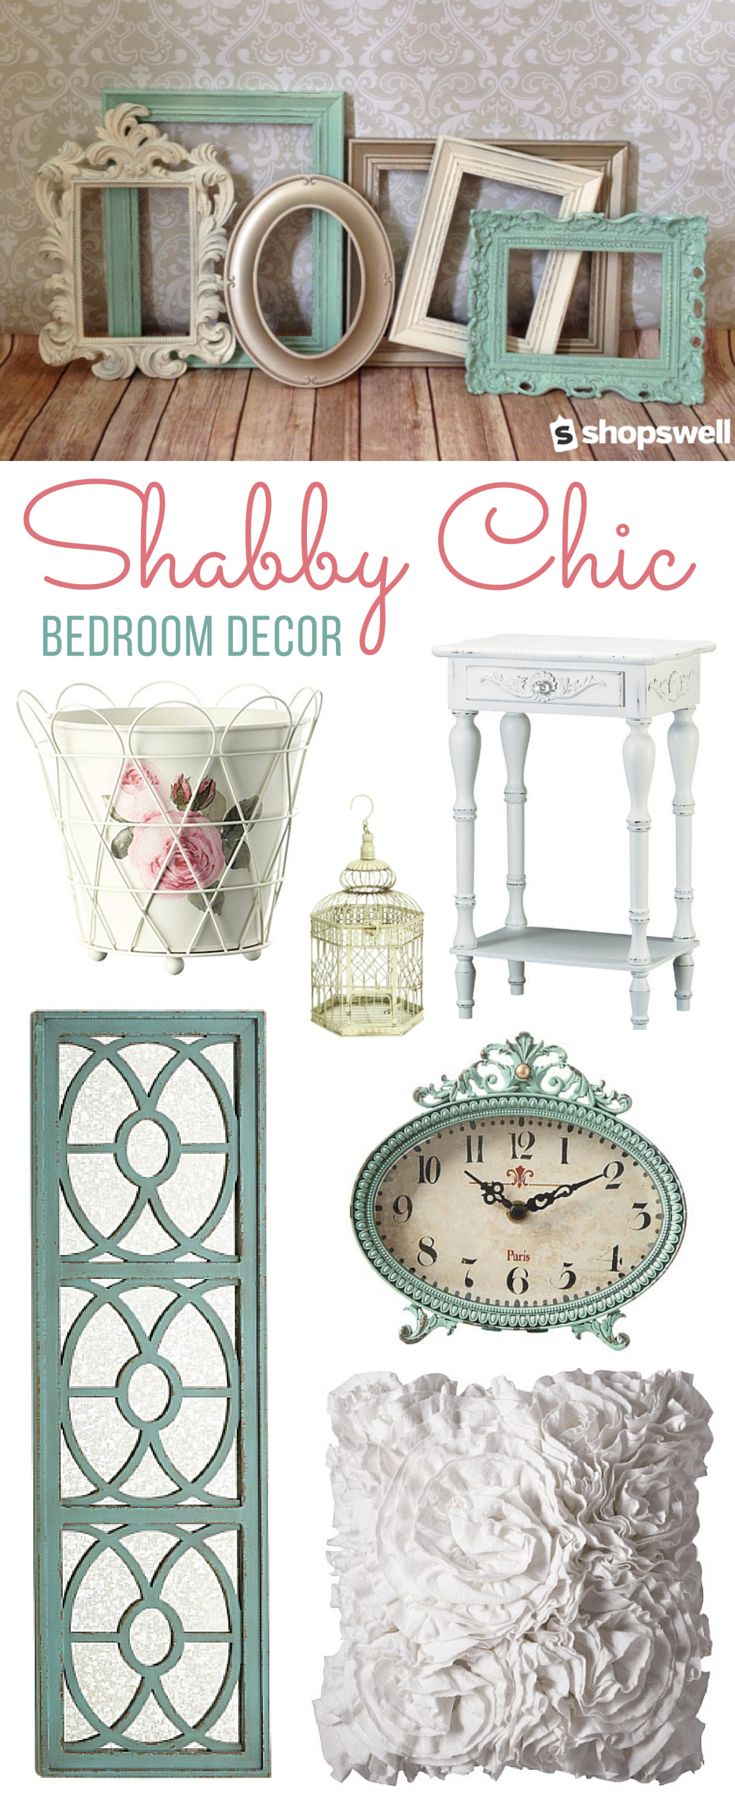 Shabby Chic Wall Decor Best 25 Shabby Chic Decor Ideas On Pinterest Shabby Chic